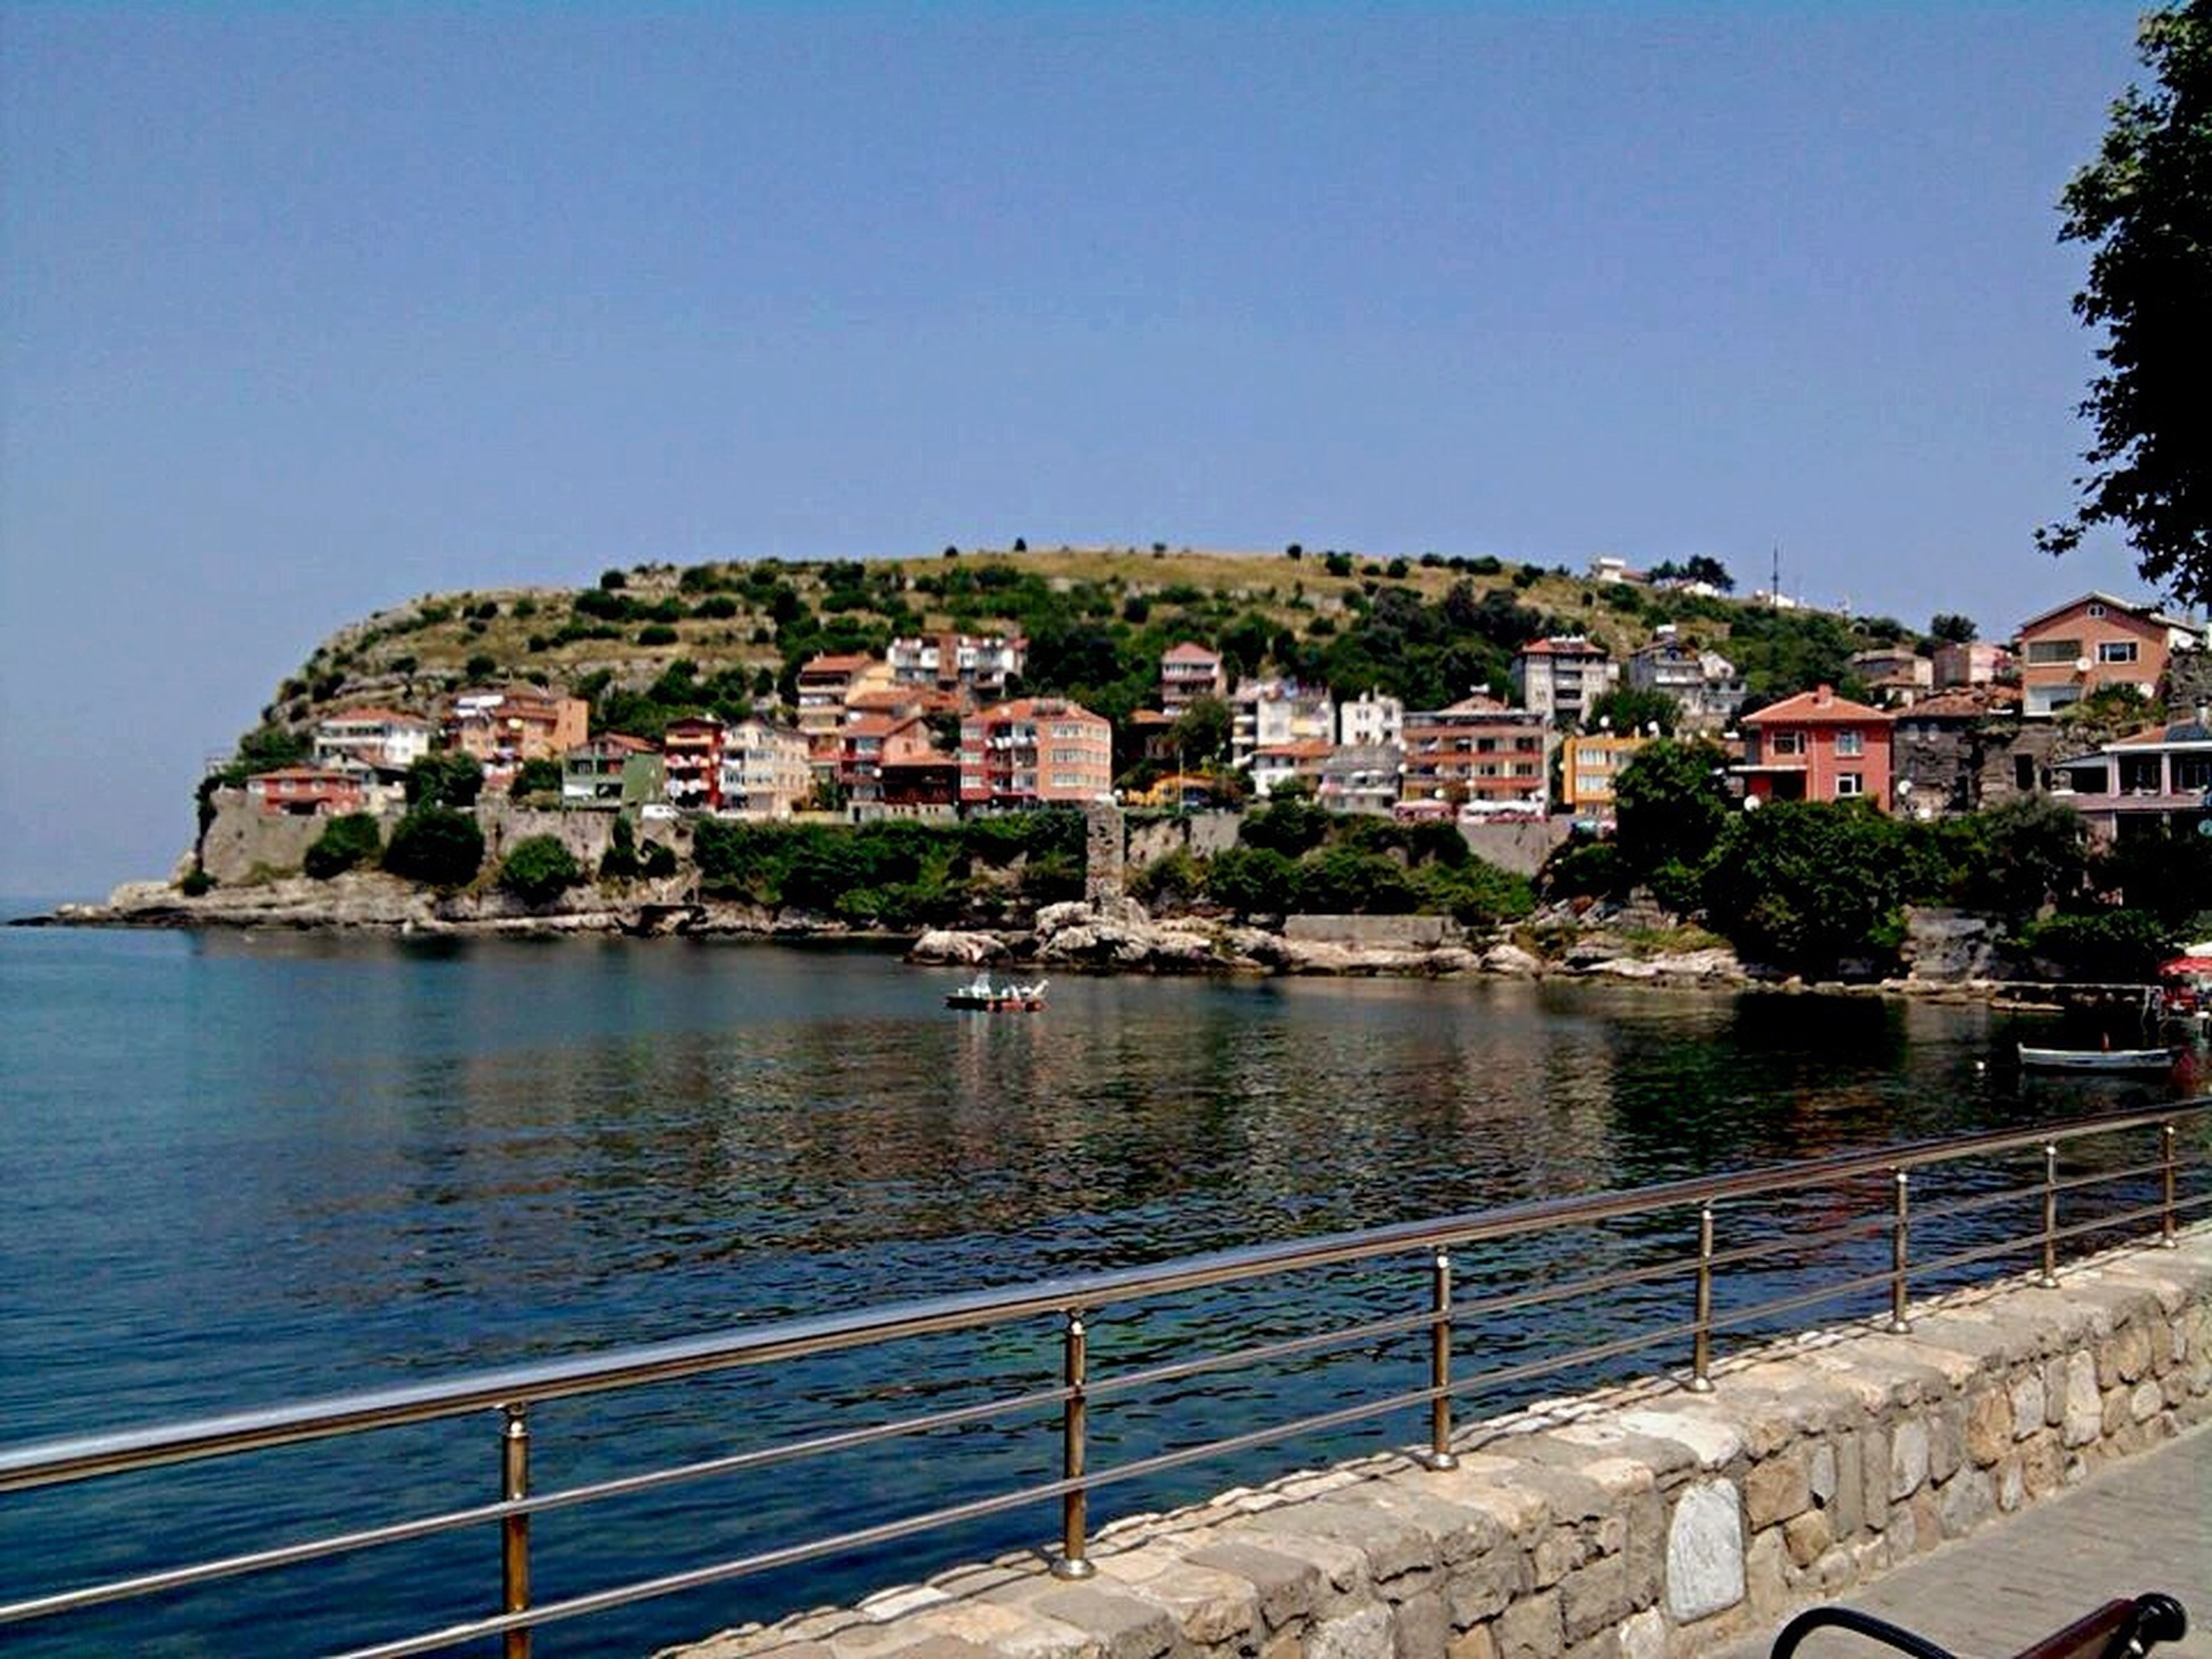 architecture, building exterior, house, built structure, residential building, clear sky, water, town, outdoors, no people, blue, travel destinations, day, sea, mountain, city, nautical vessel, sky, community, cityscape, nature, tree